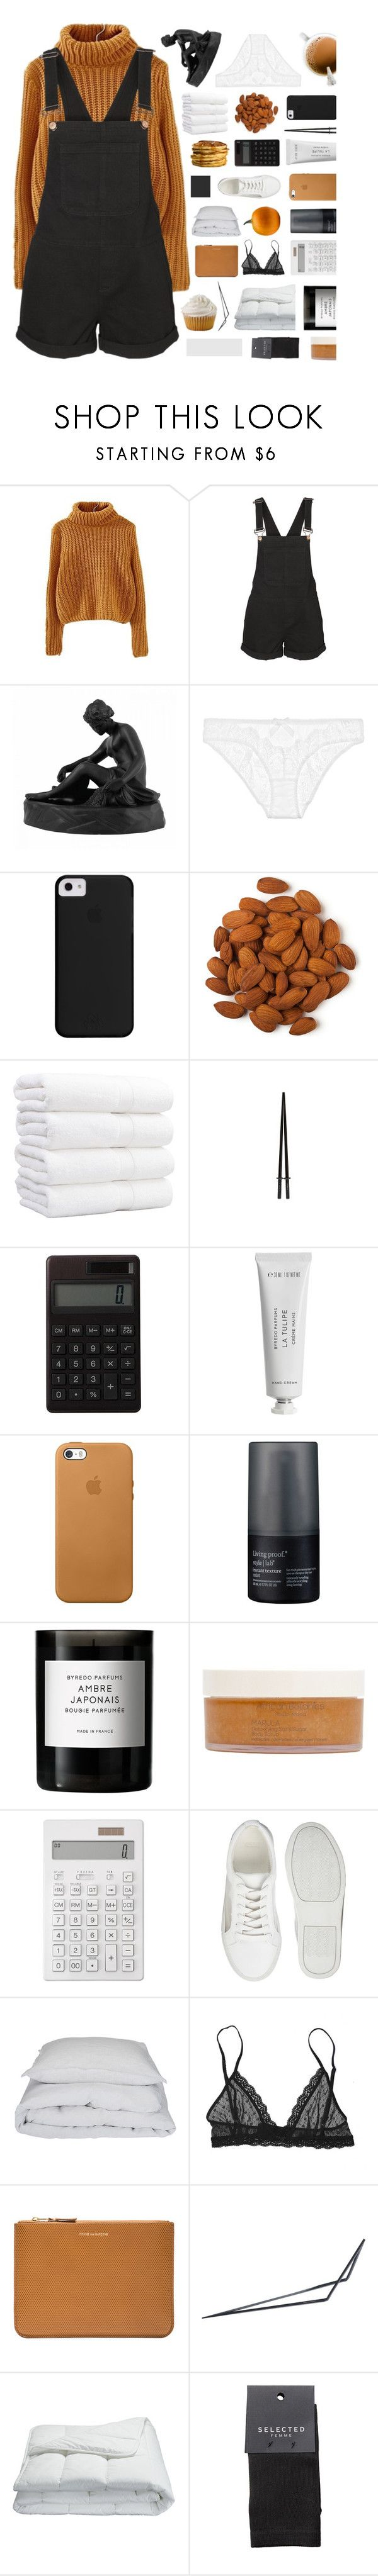 """I DON'T PLAY BY THE RULES"" by city-pool ❤ liked on Polyvore featuring Vero Moda, Wedgwood, L'Agent By Agent Provocateur, Muji, Byredo, Living Proof, African Botanics, ASOS, By Nord and Eberjey"